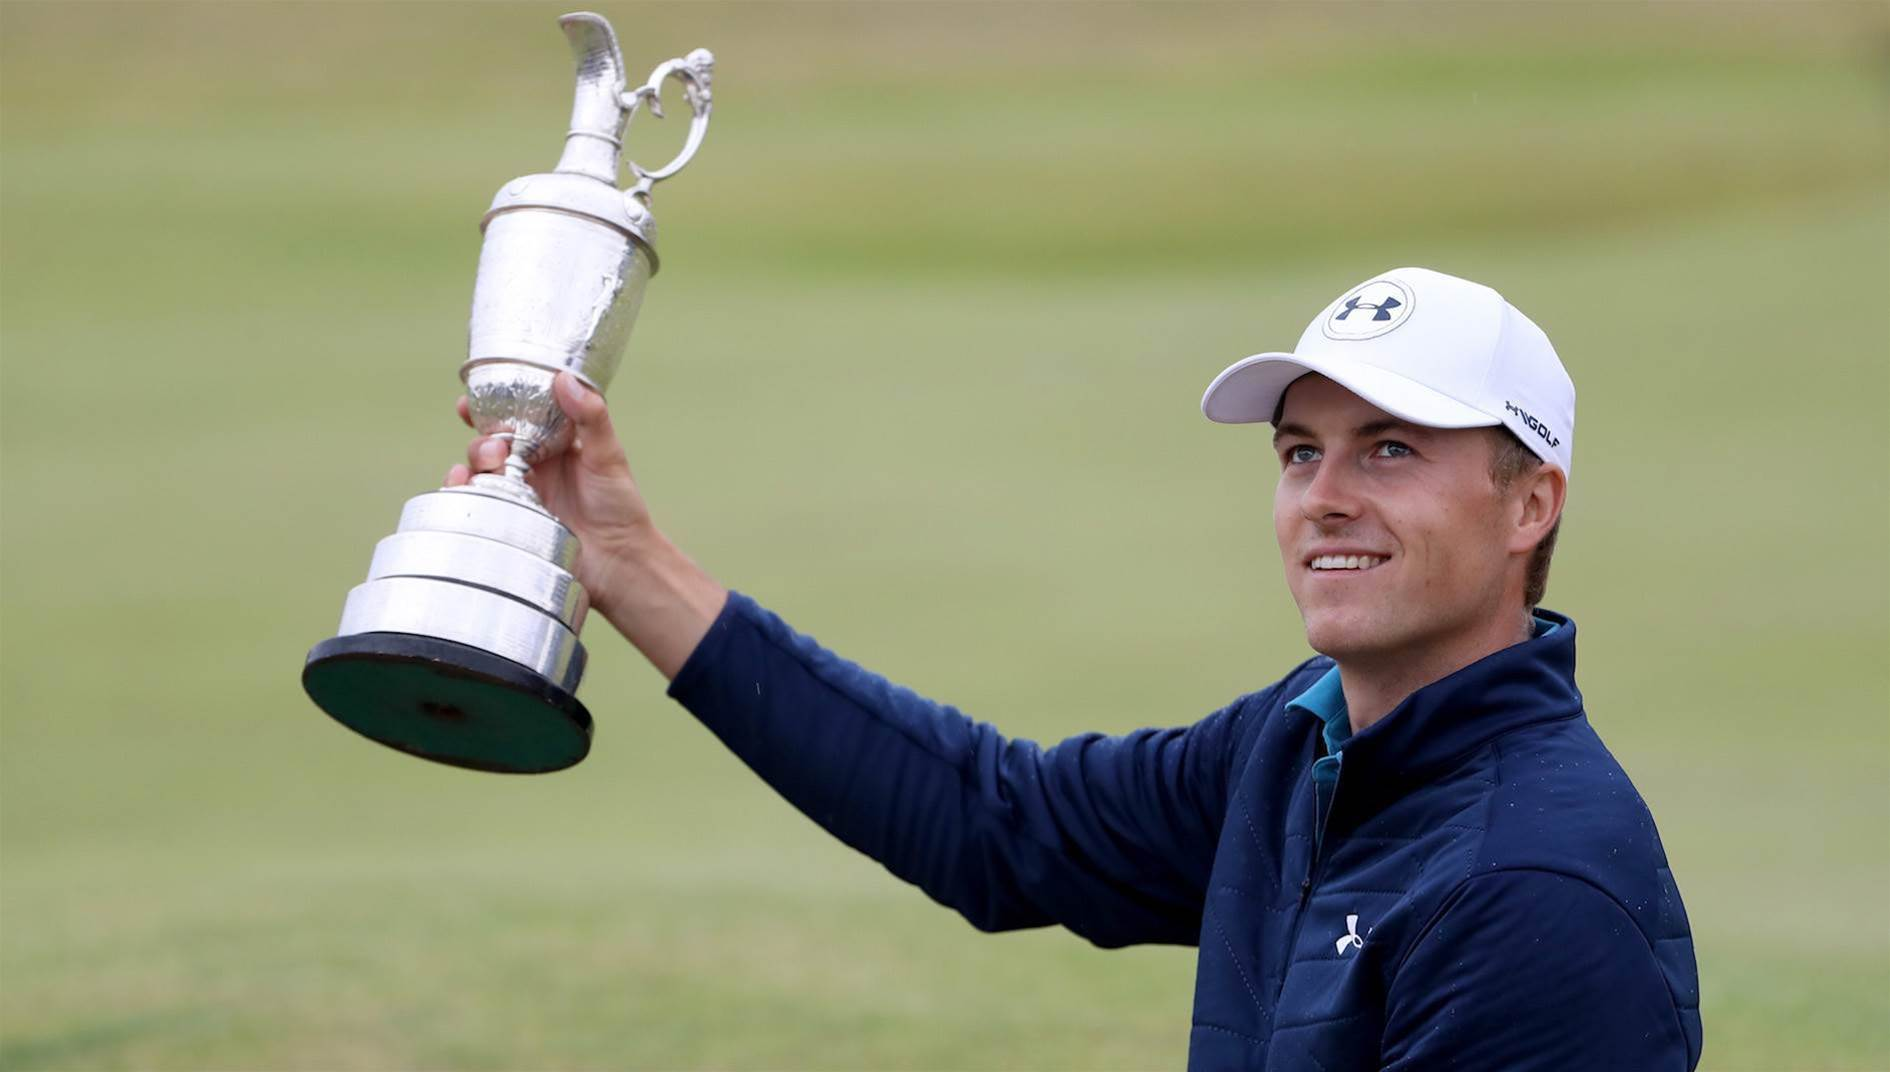 THE OPEN: Spieth dodges major meltdown to win